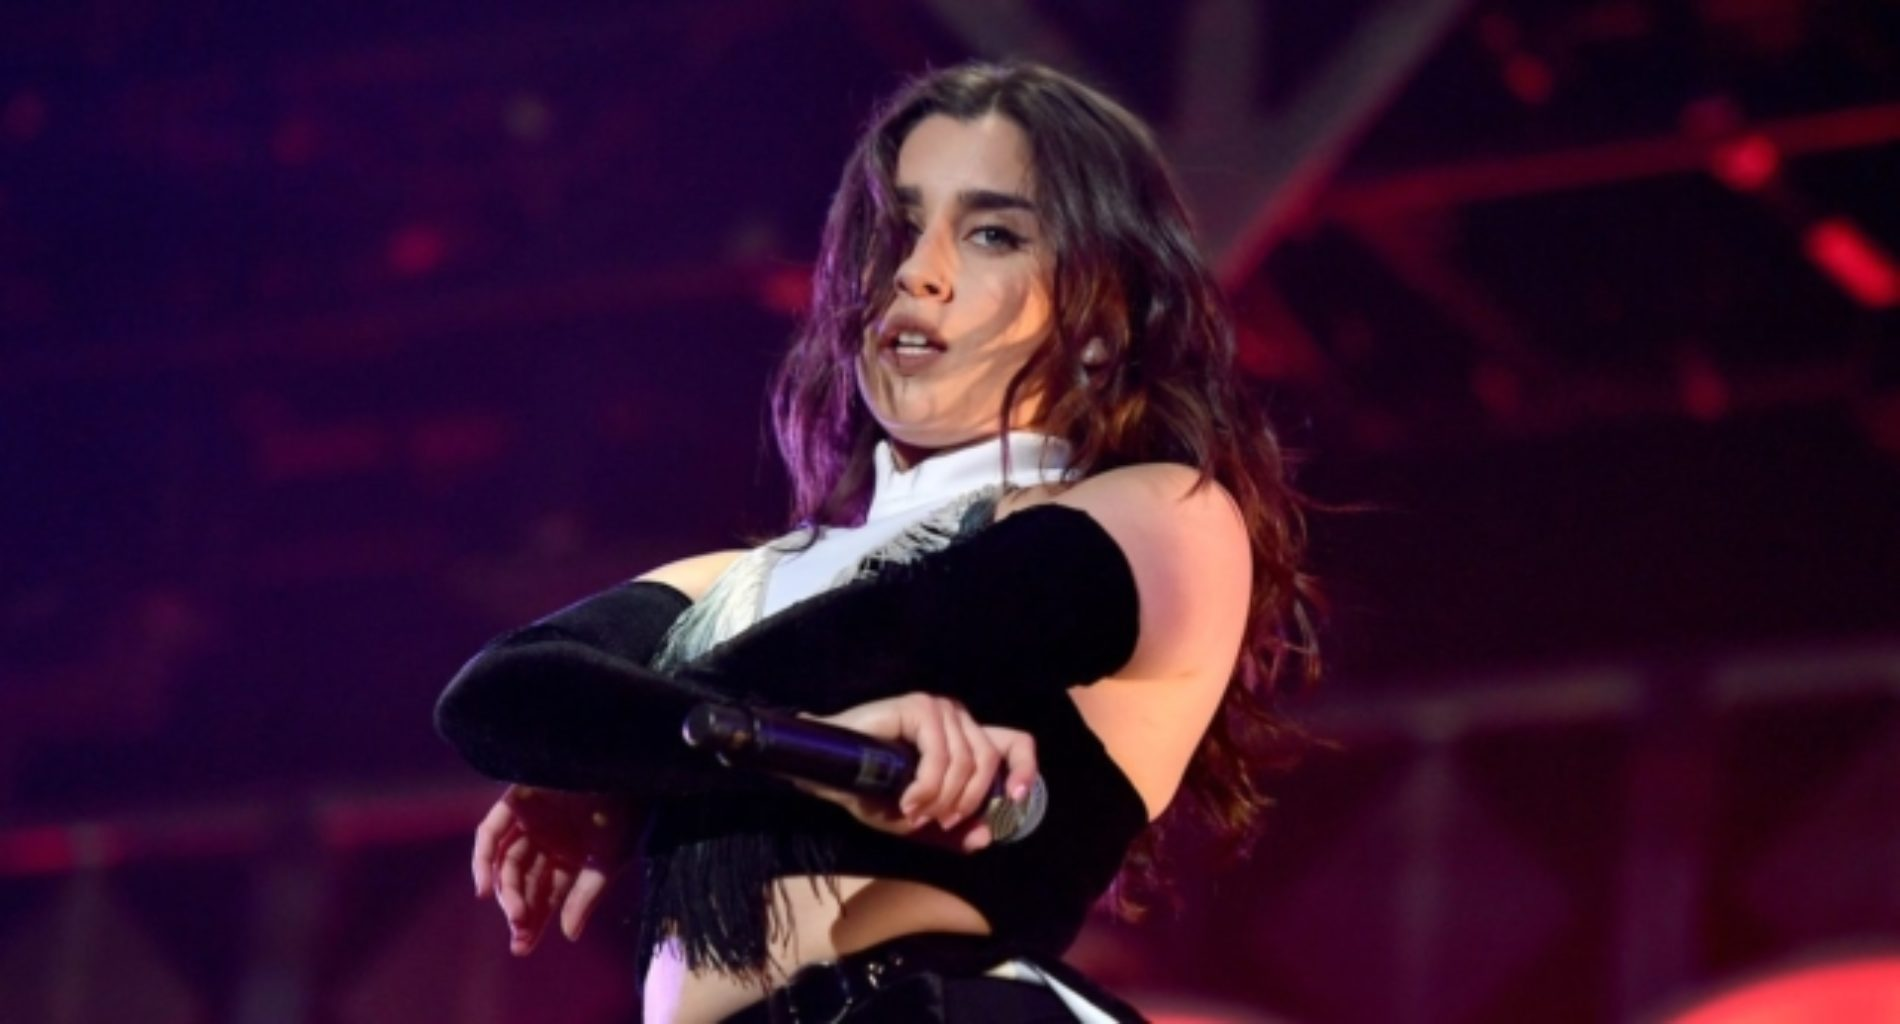 Fifth Harmony's Lauren Jauregui was warned not to come out by her friends and family